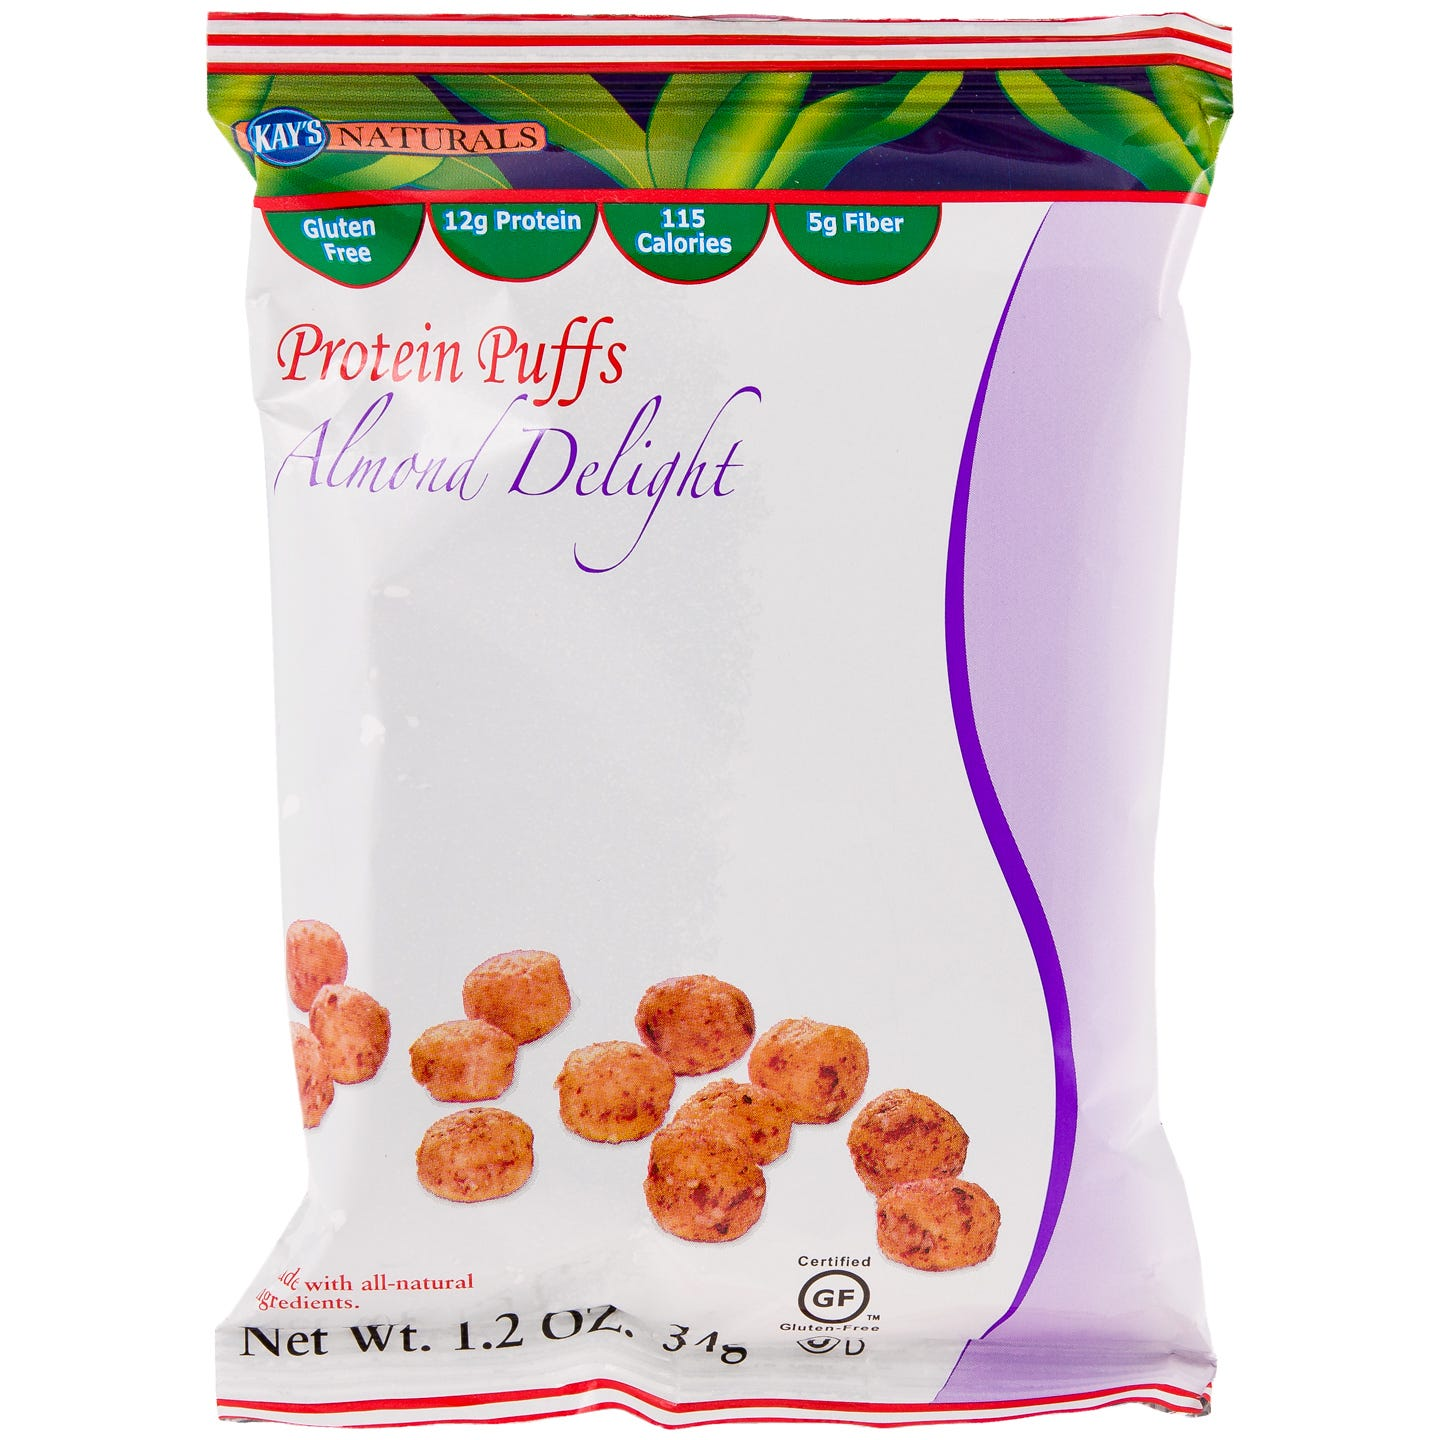 Kay's Naturals Protein Snacks - Almond Delight Puffs